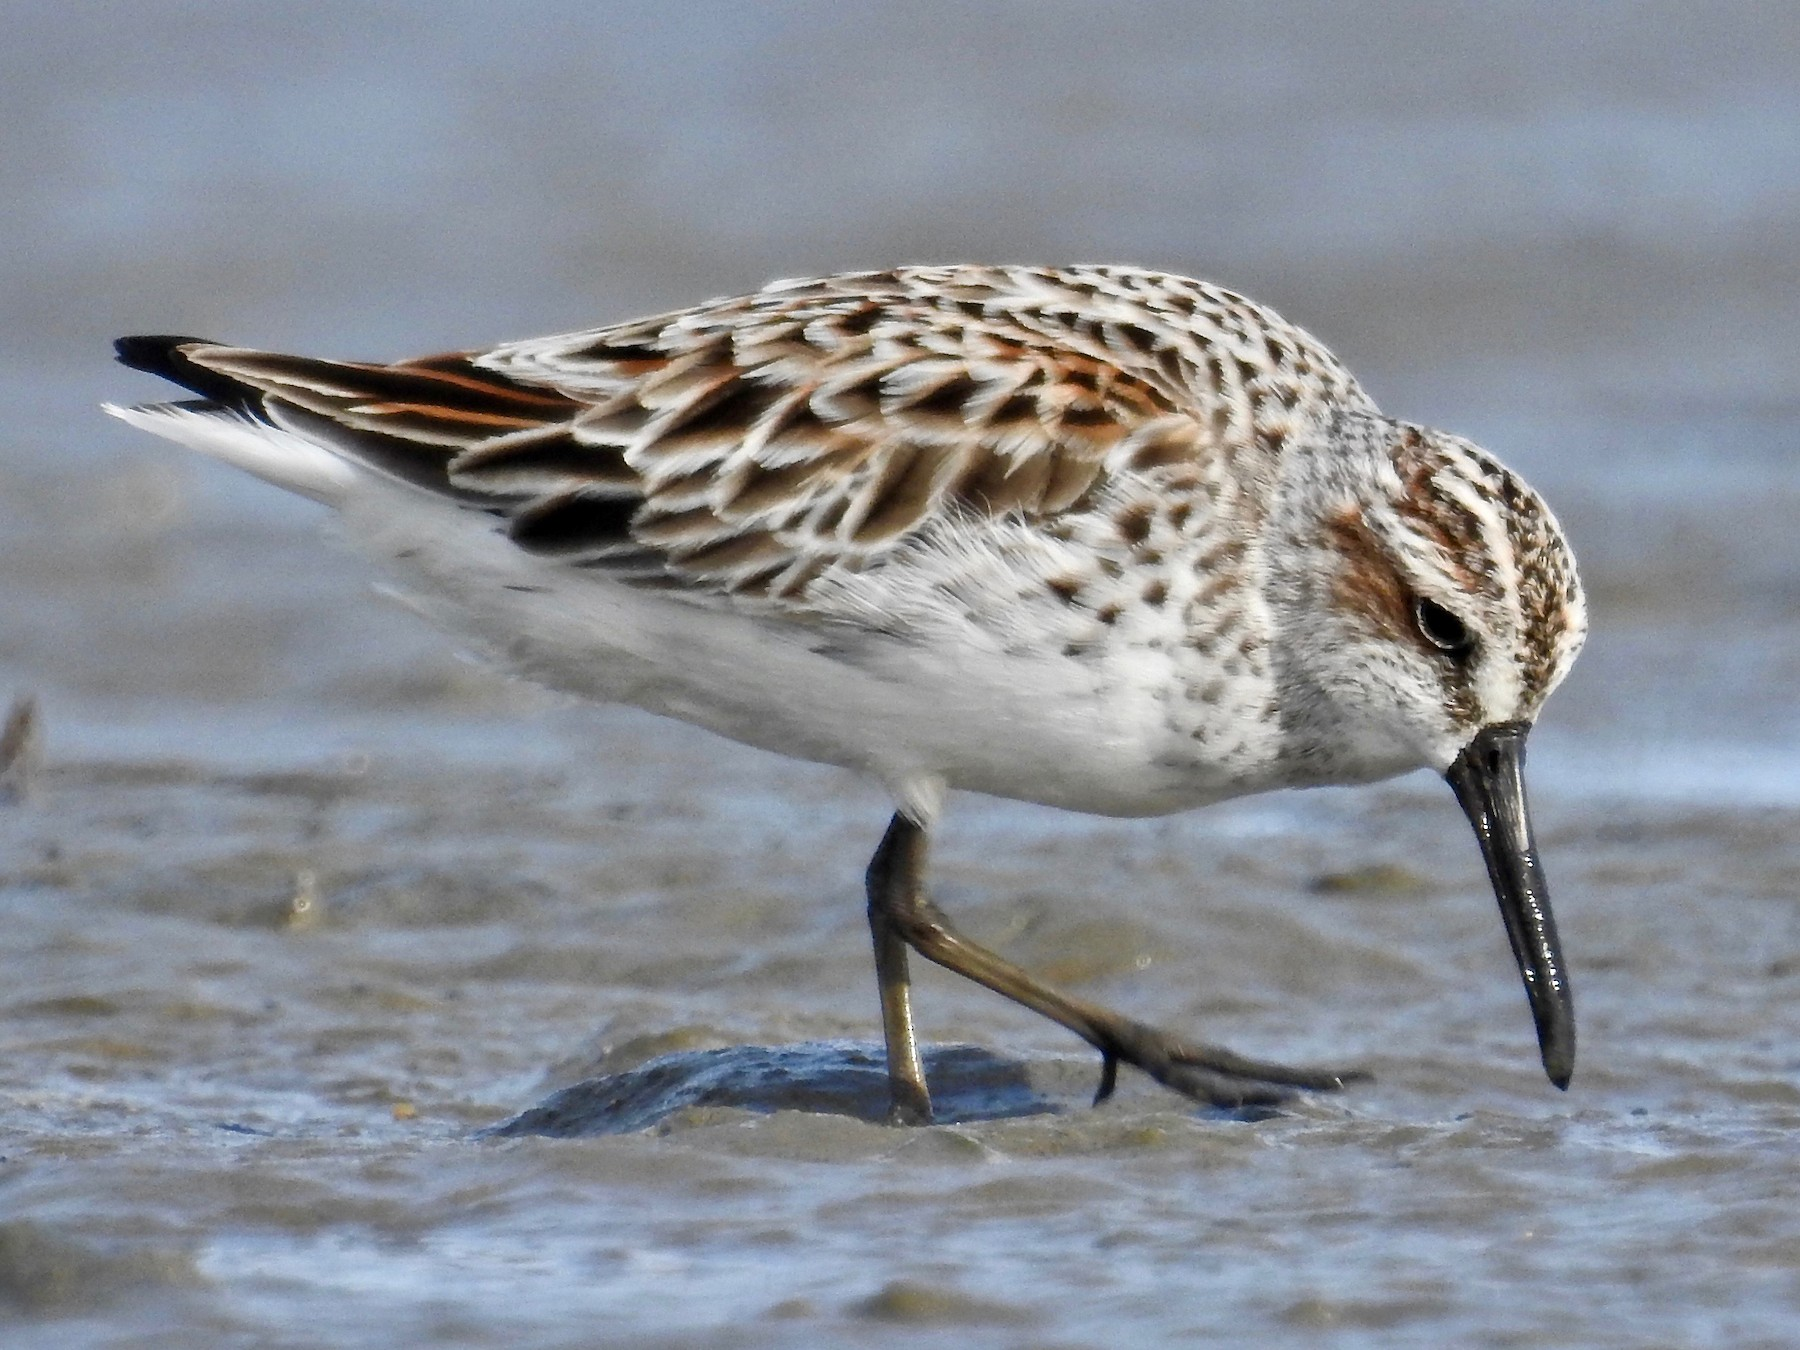 Broad-billed Sandpiper - Michael Daley